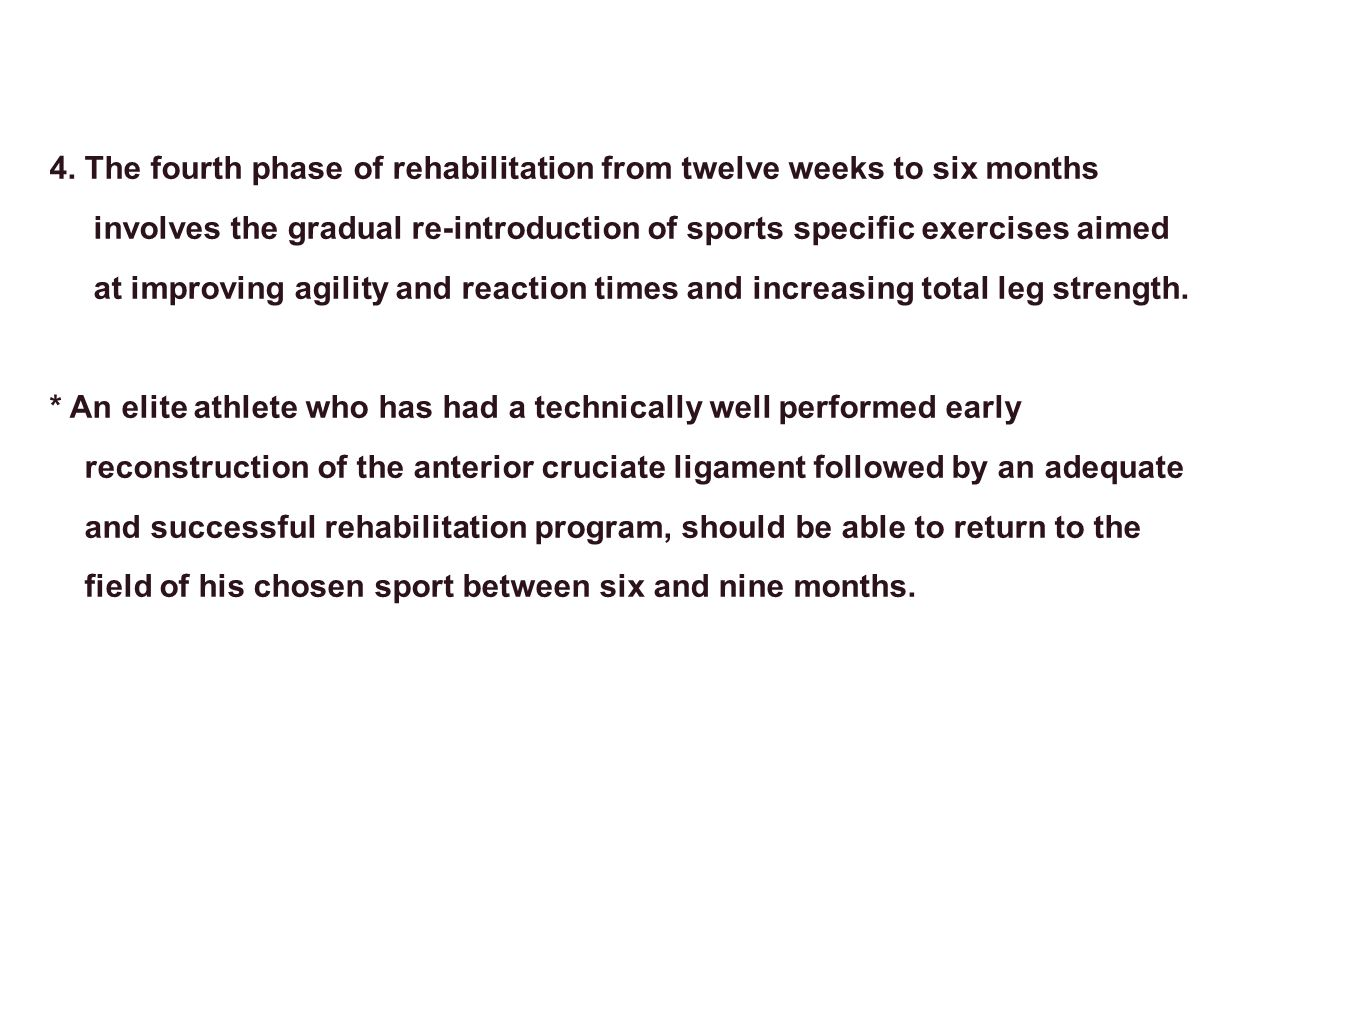 4. The fourth phase of rehabilitation from twelve weeks to six months